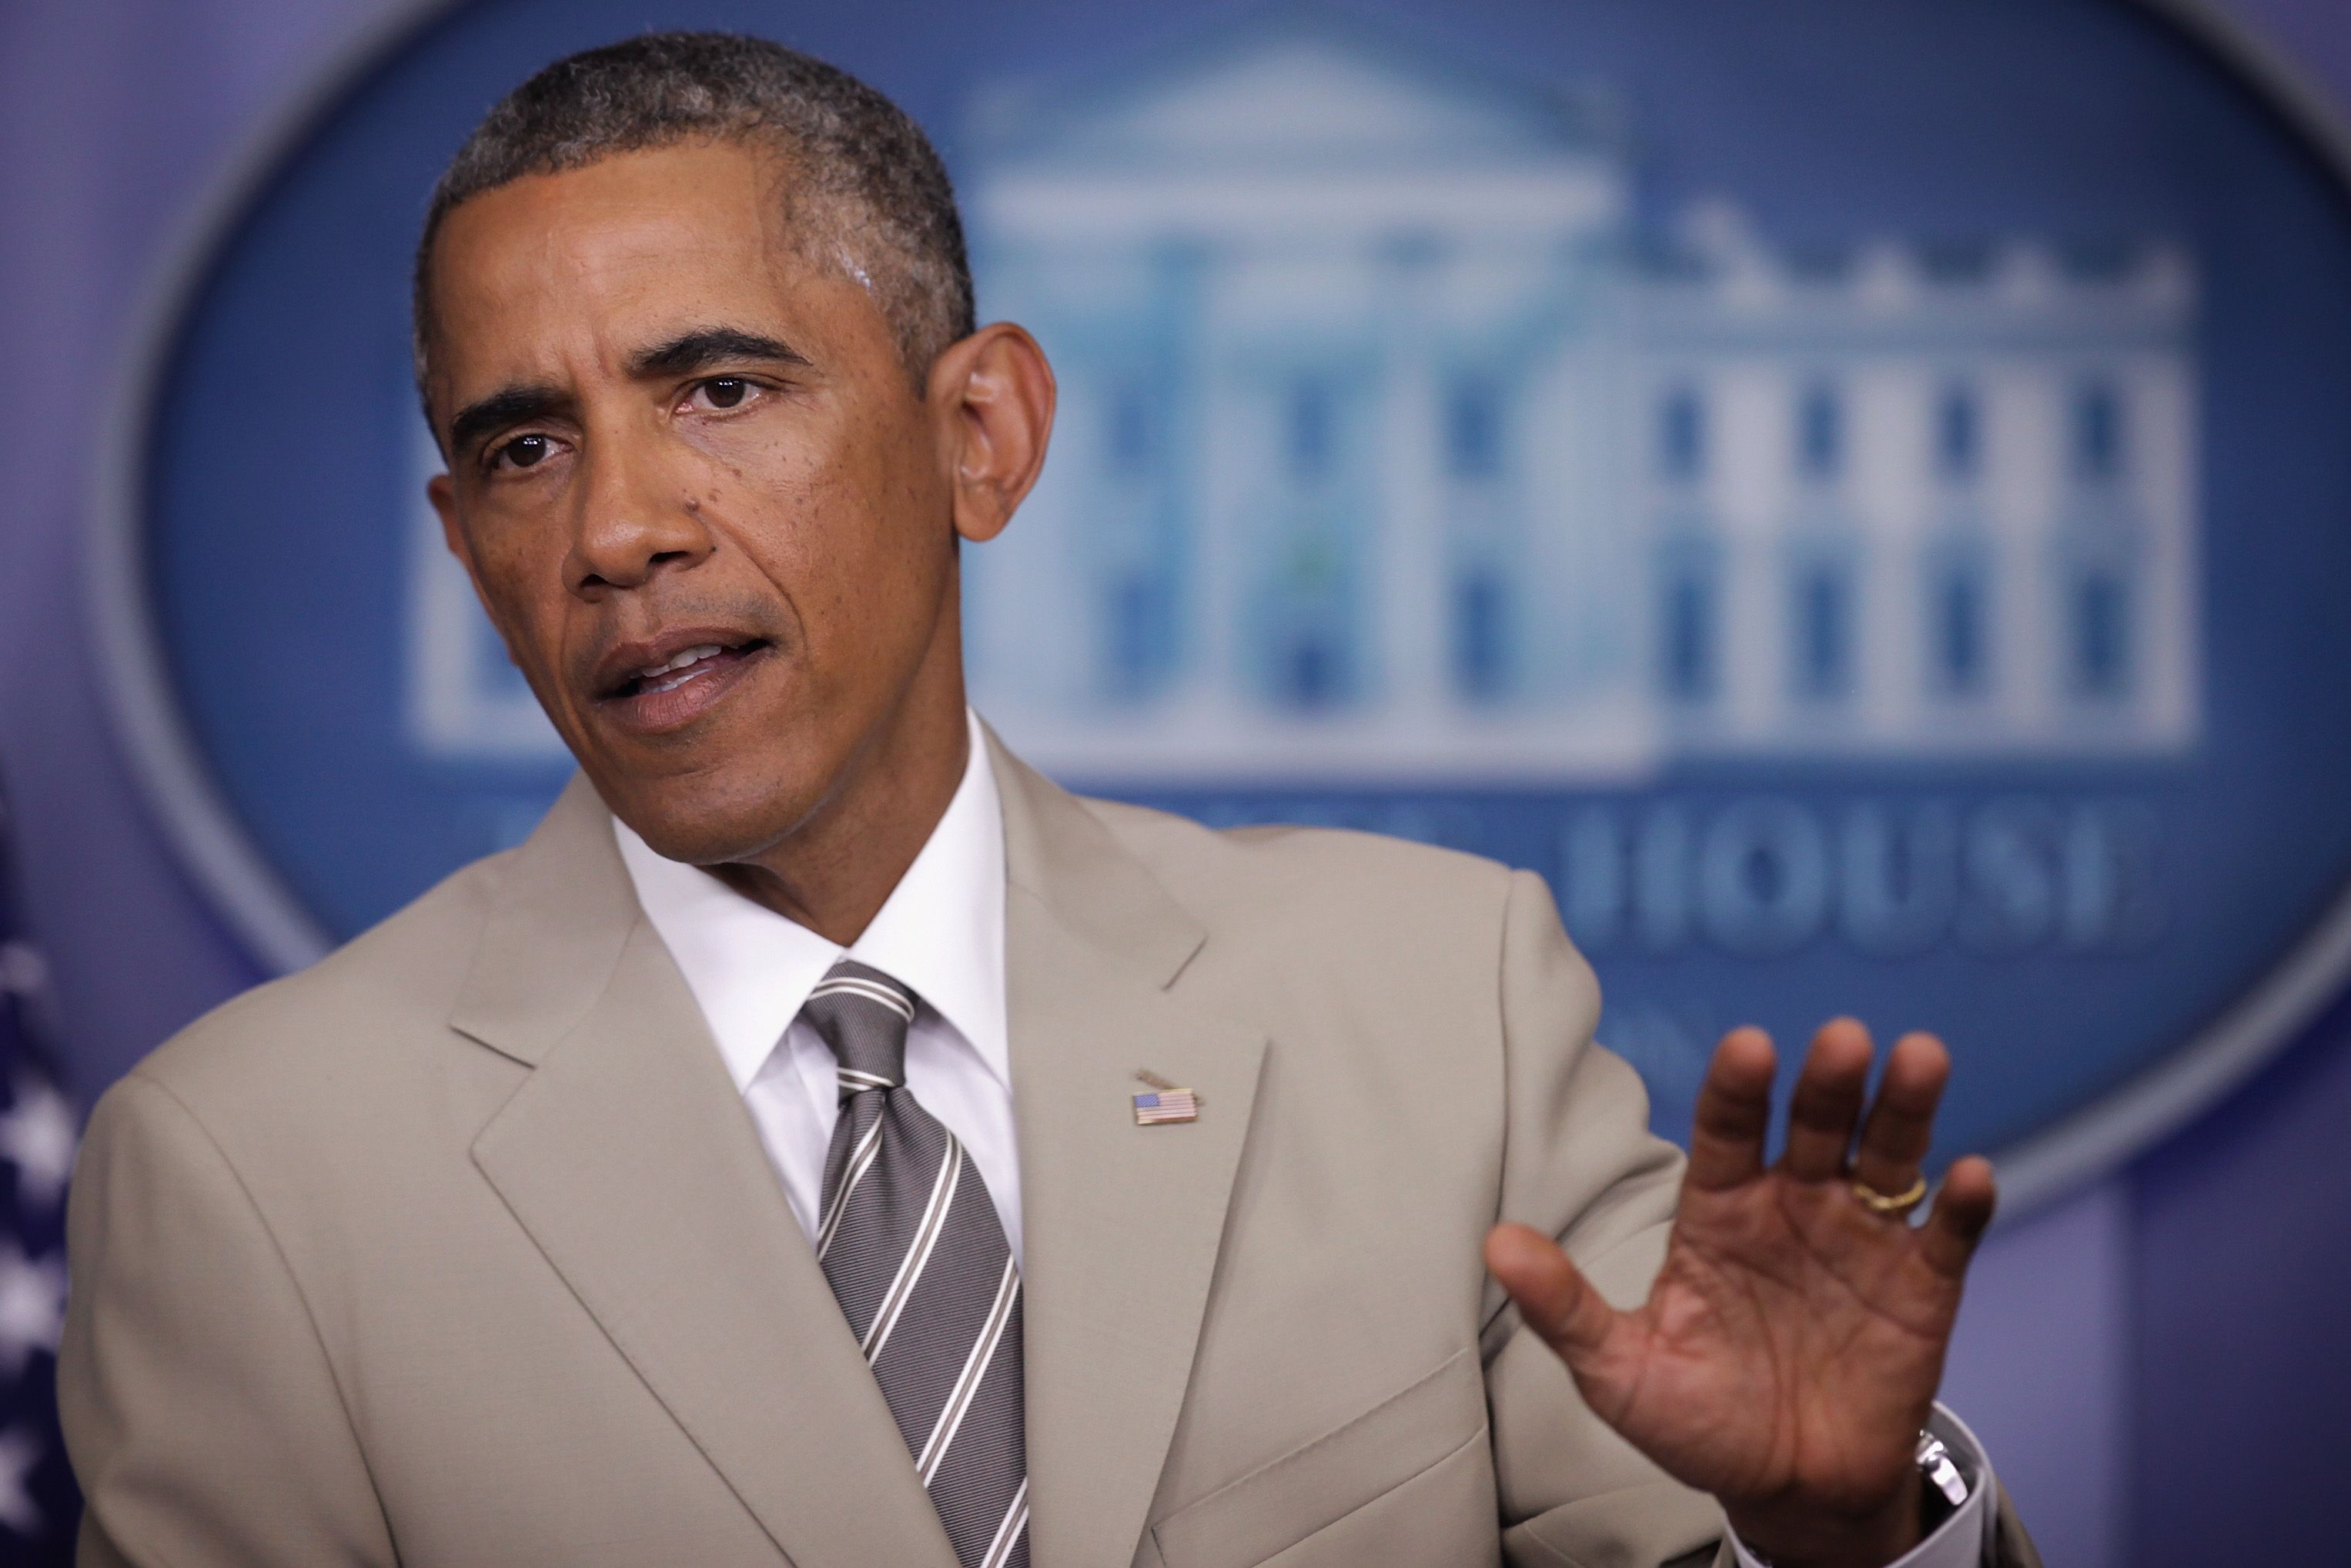 President Obama at the White House (in that suit) on August 28, 2014.